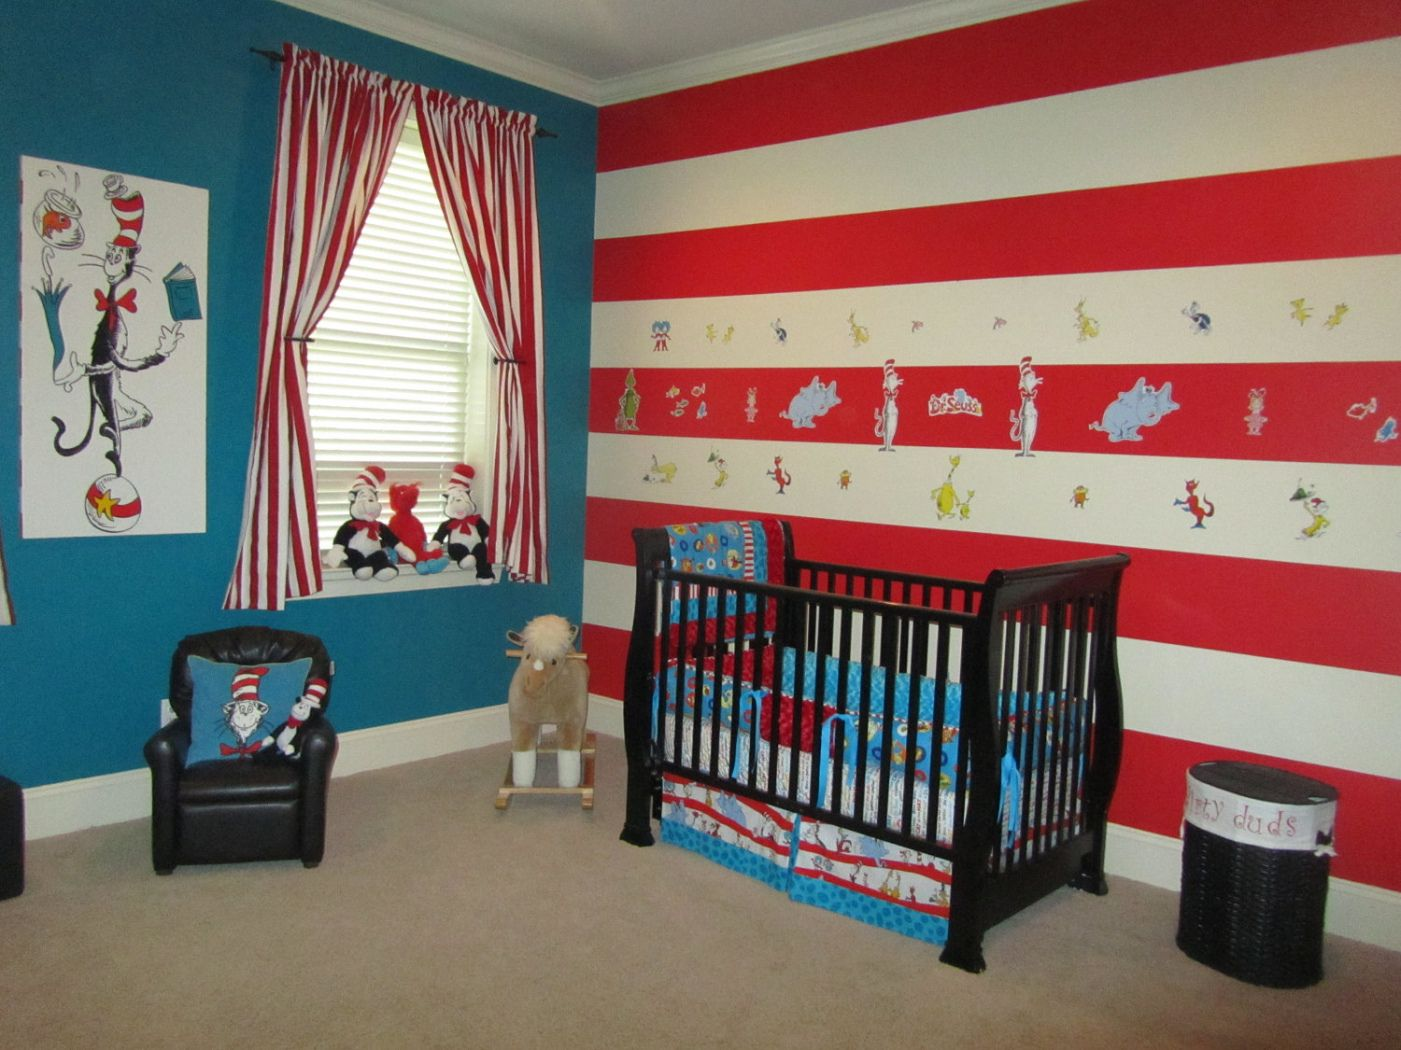 Pin By Rahayu12 On Es Room Low Budget Dr Seuss